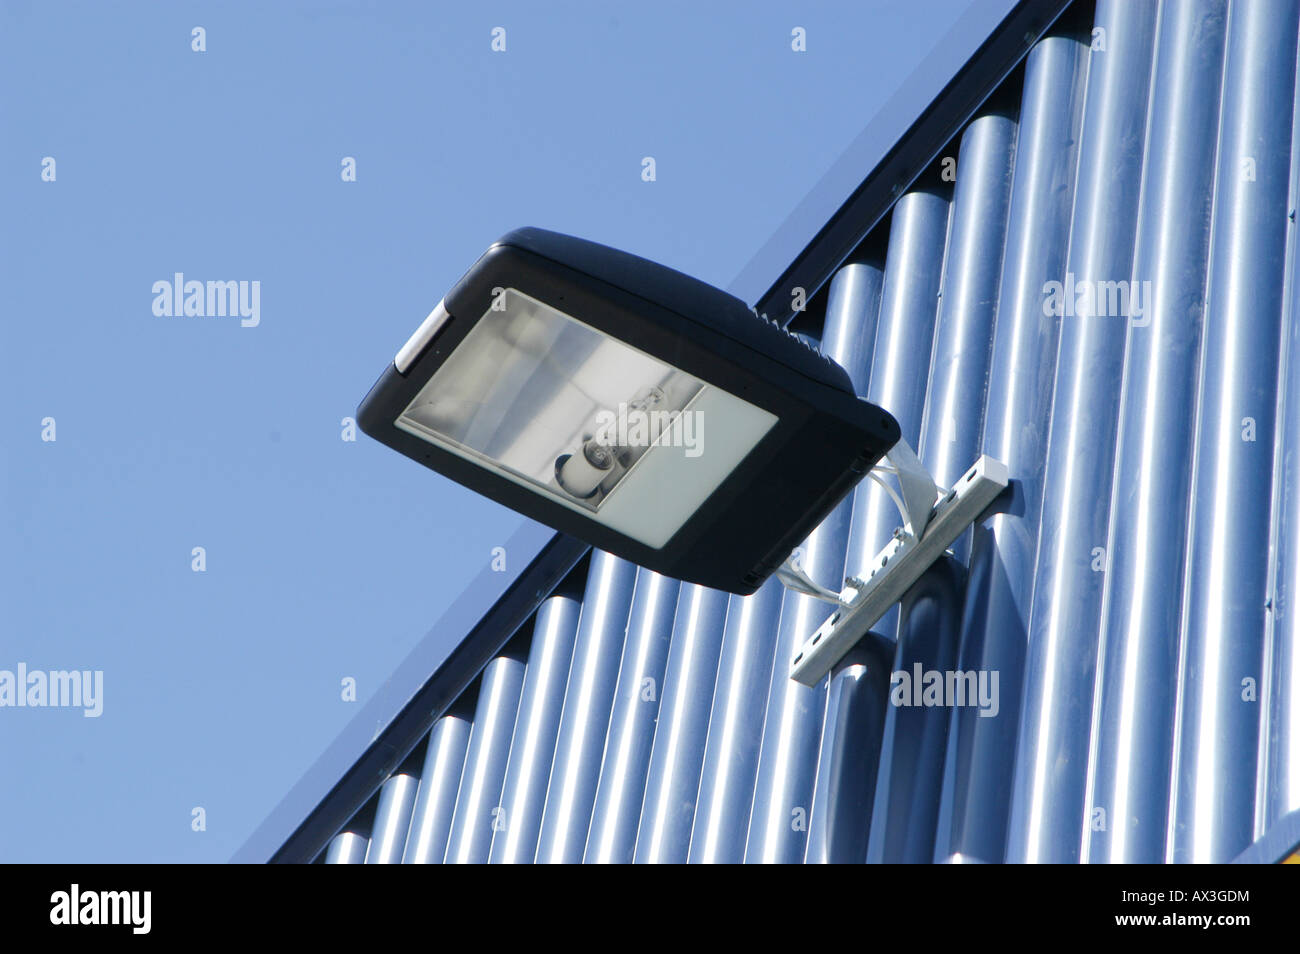 Security light on a commercial building in the uk stock photo security light on a commercial building in the uk mozeypictures Gallery